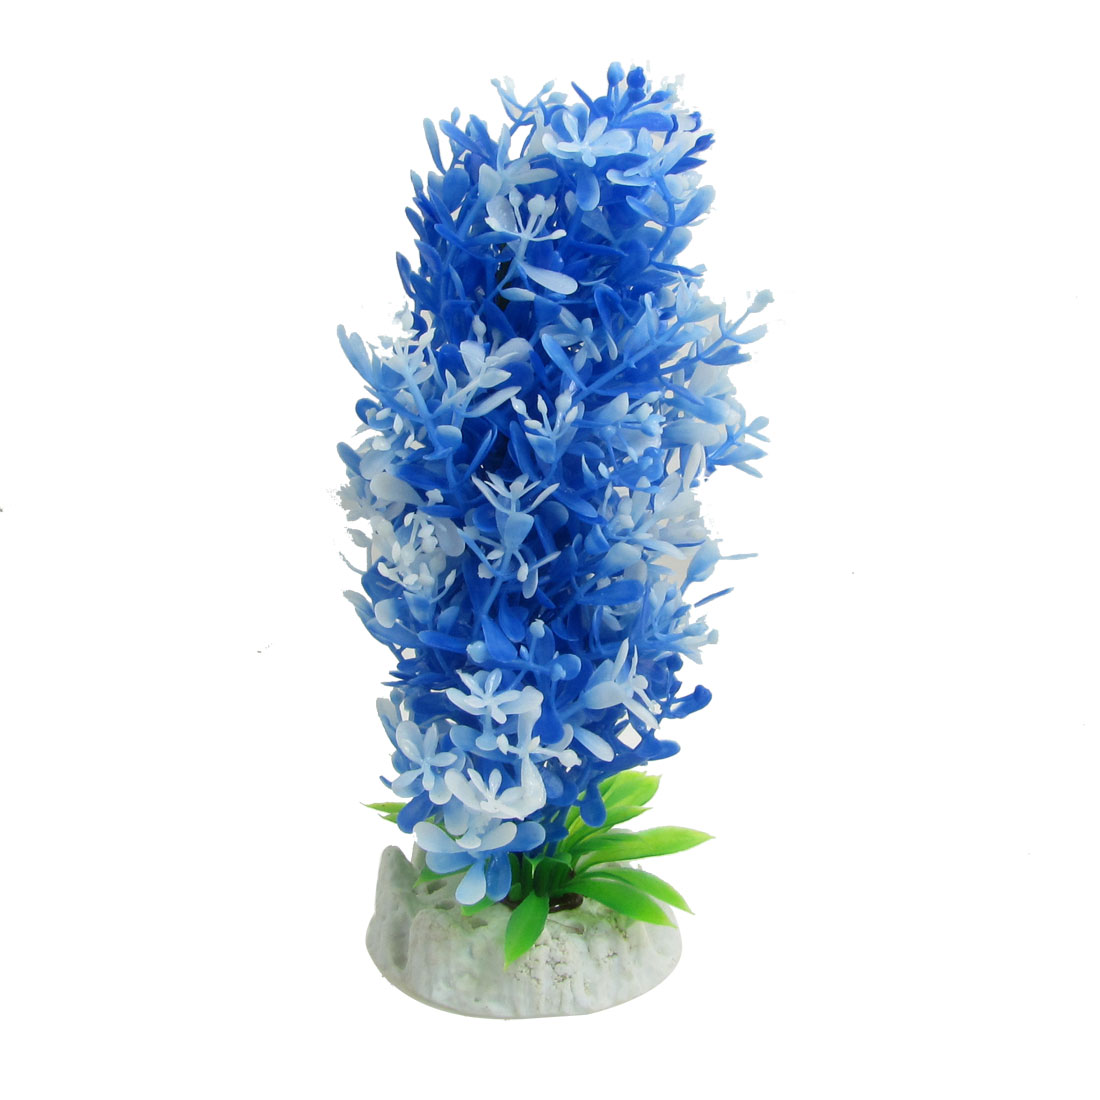 "Blue White Plastic Aquatic Water Plants Ornament 7.7"" Height for Fish Tank"